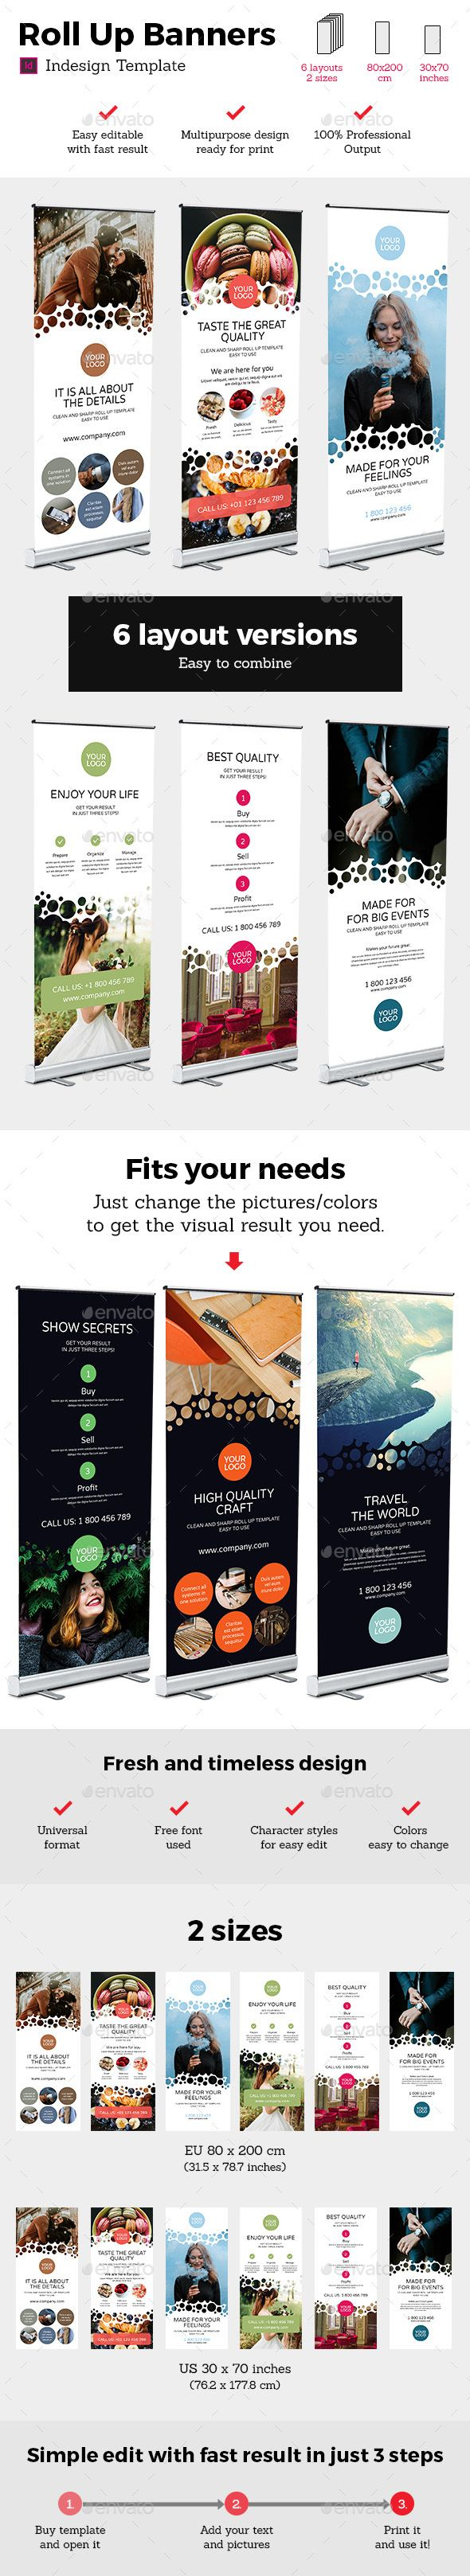 Rollup Stand Banner Display Bubble 12x Indesign Template